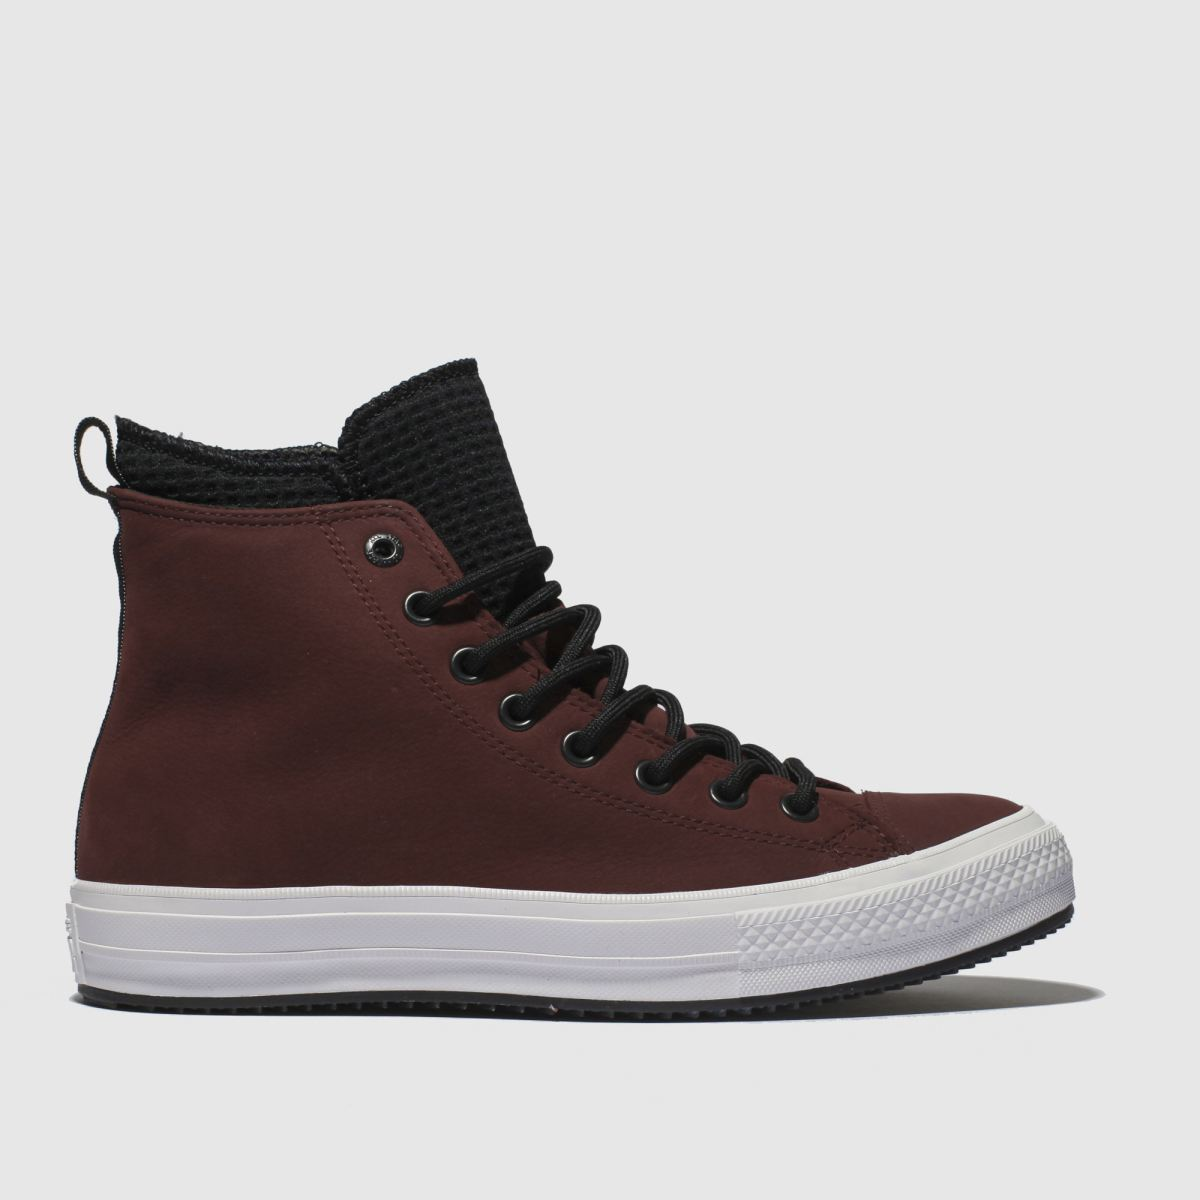 Converse Burgundy All Star Utility Draft Boot Hi Trainers